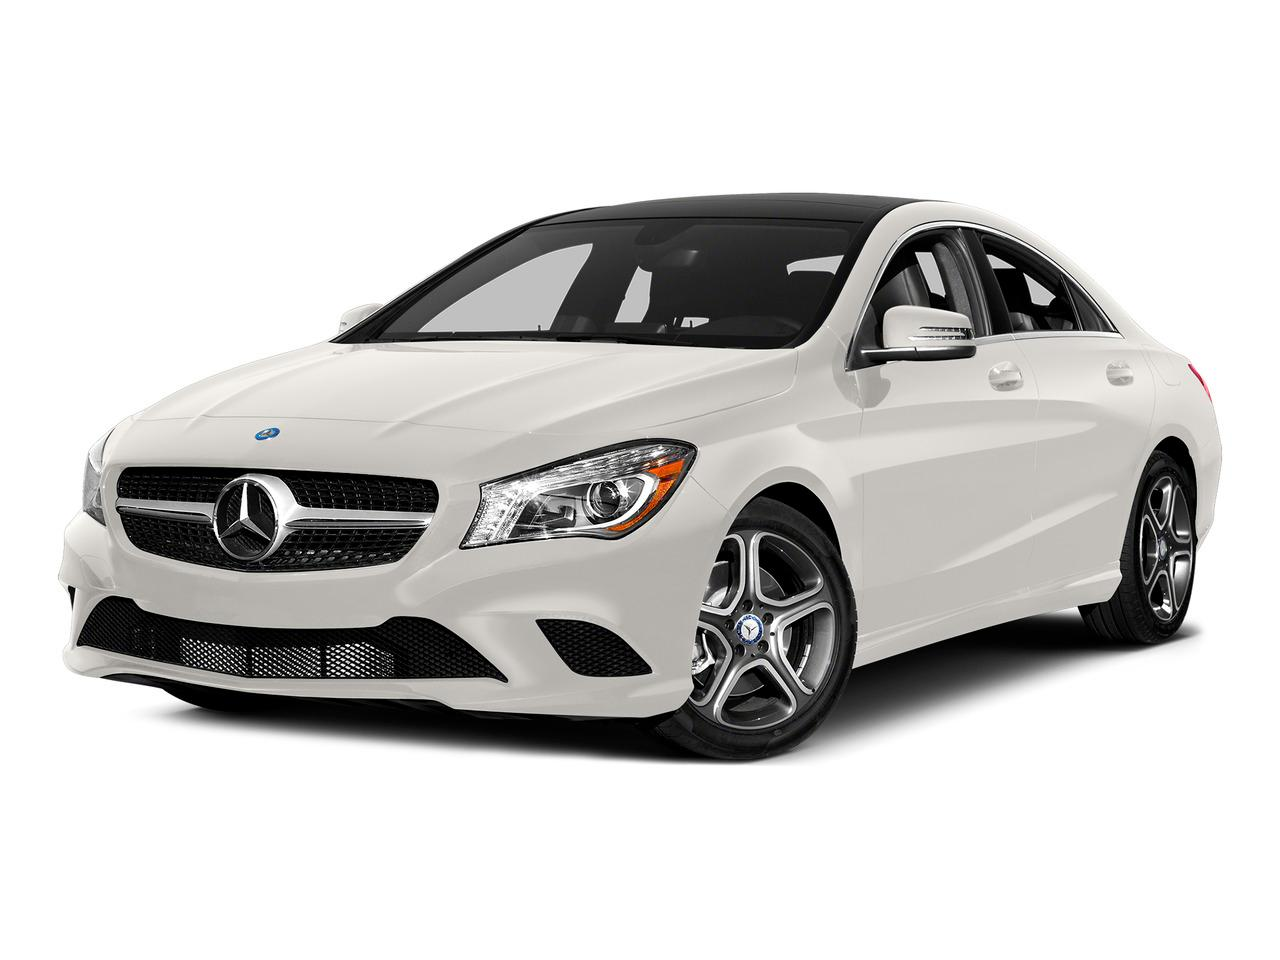 2015 Mercedes-Benz CLA-Class Vehicle Photo in Owensboro, KY 42303